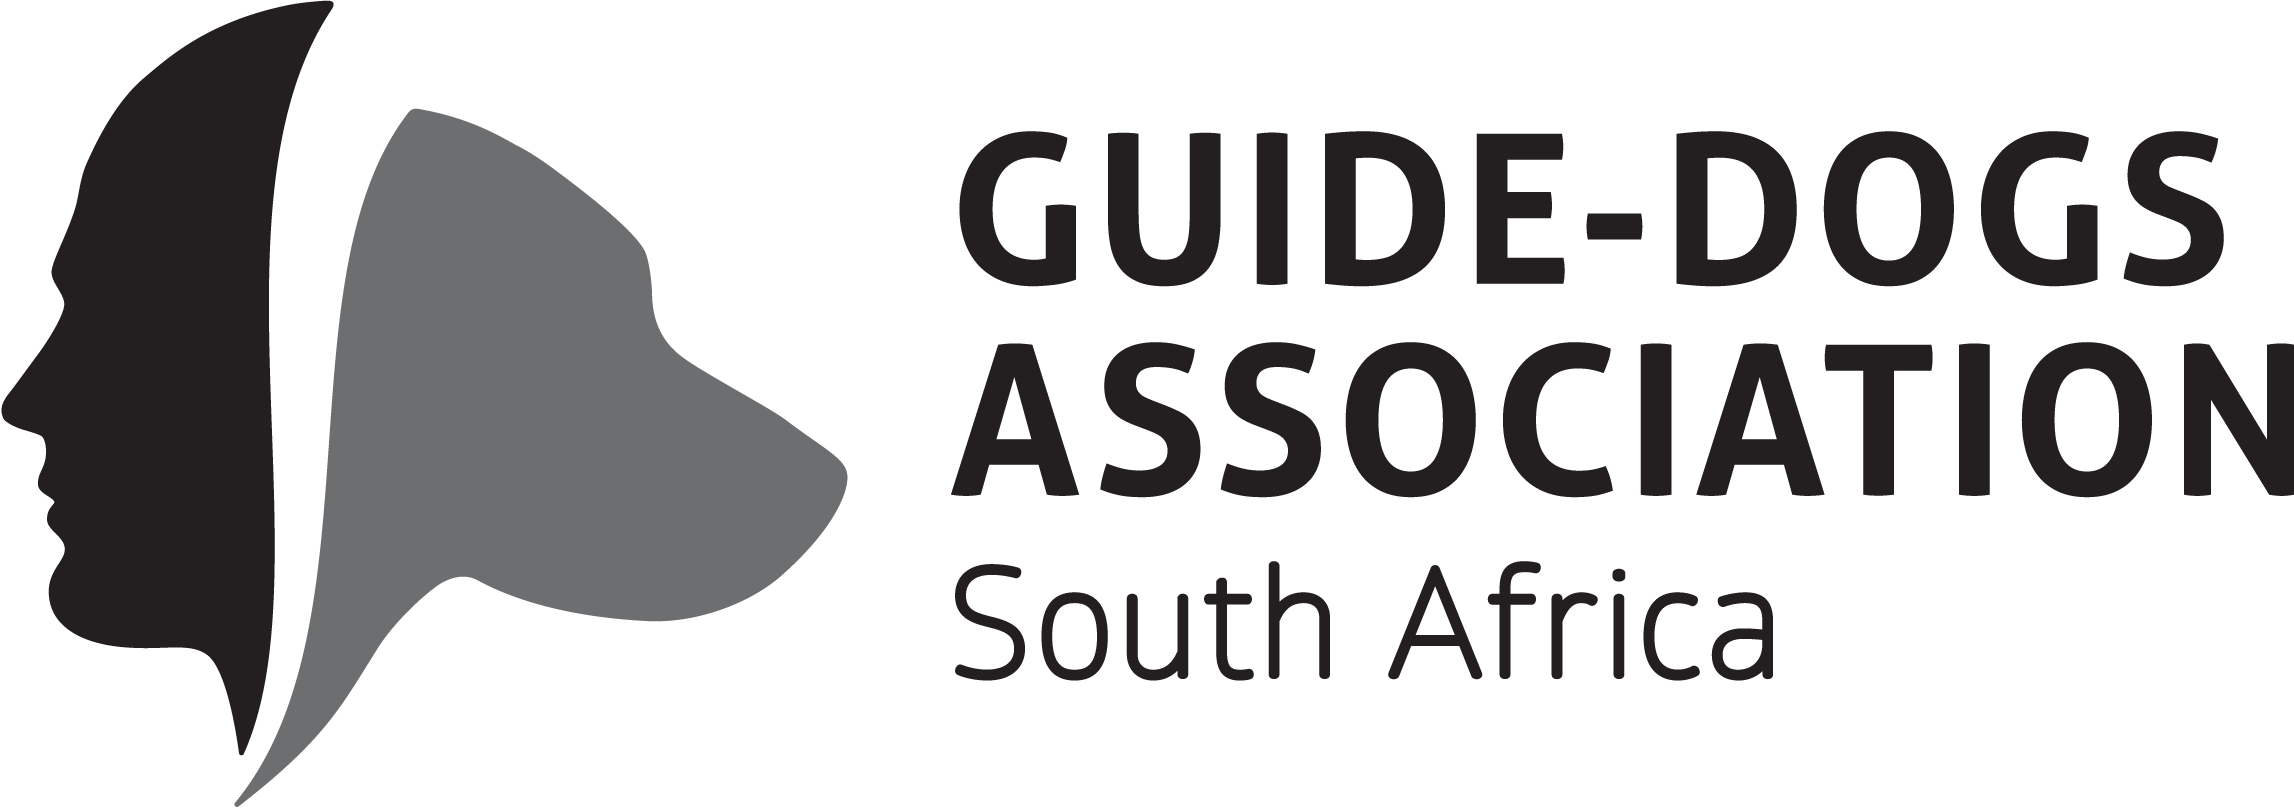 Guide Dogs Association of South Africa